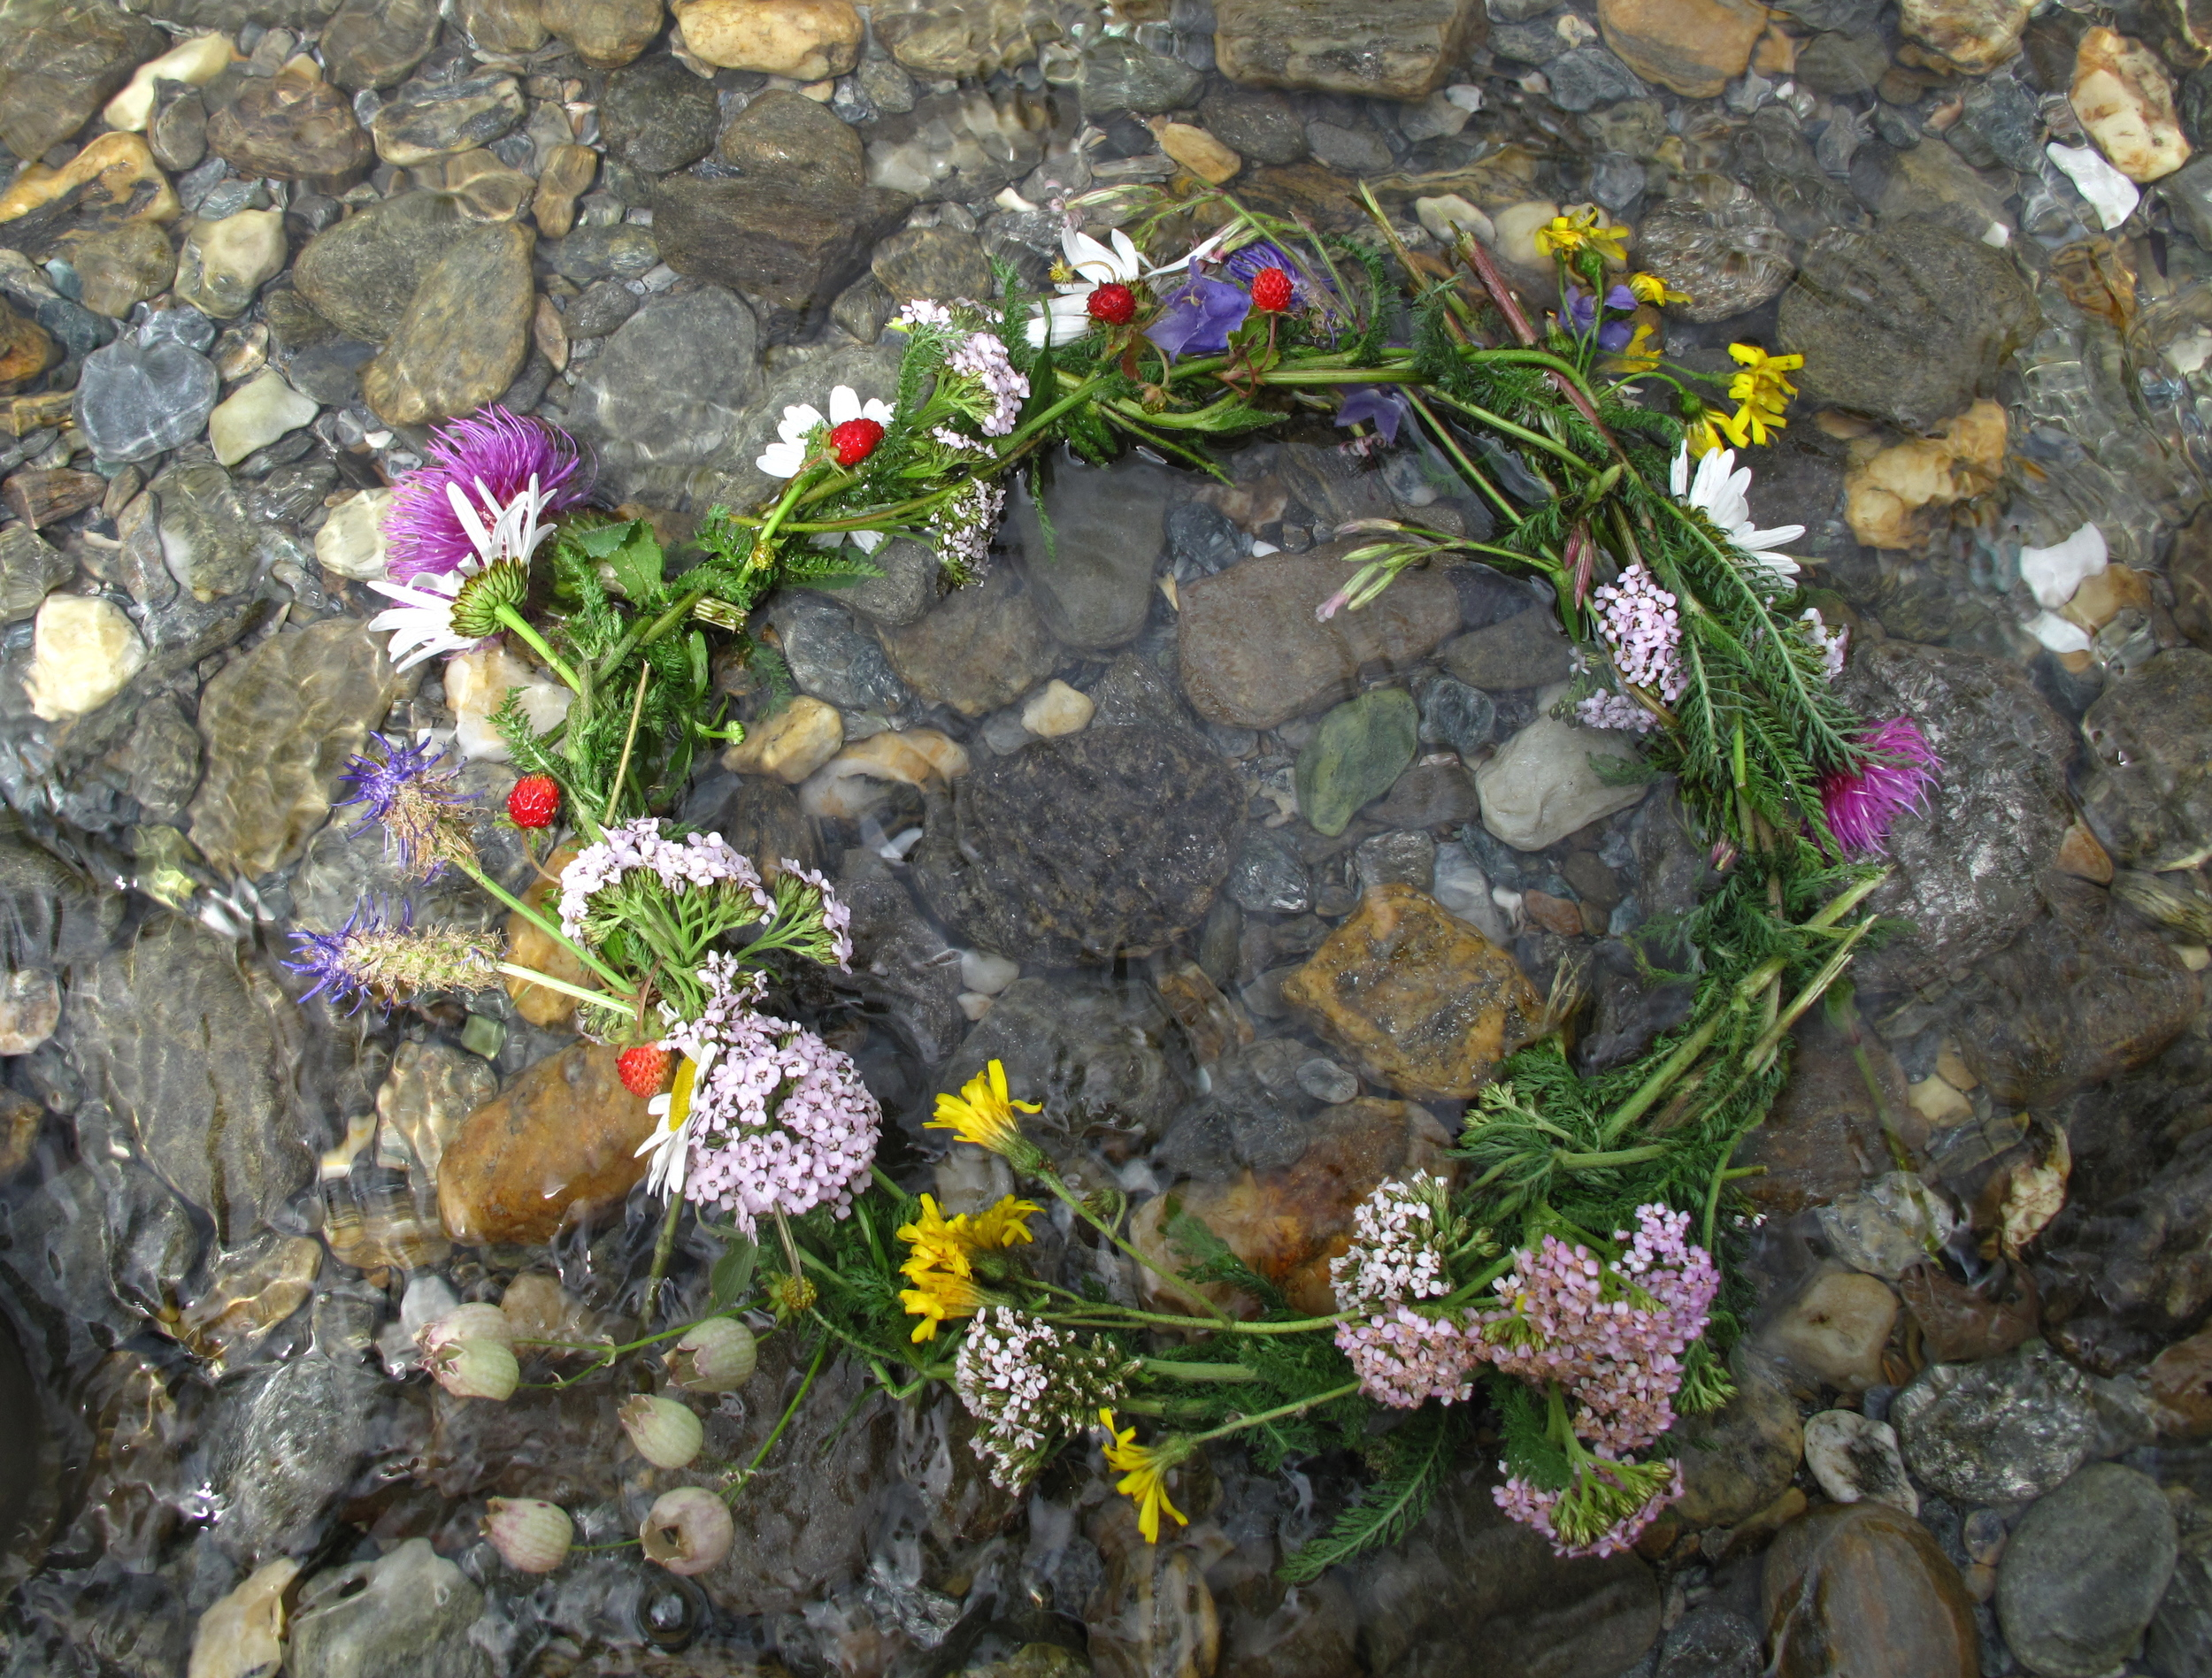 A flower crown of wild flowers and wild strawberries, floating on a crystal clear river.